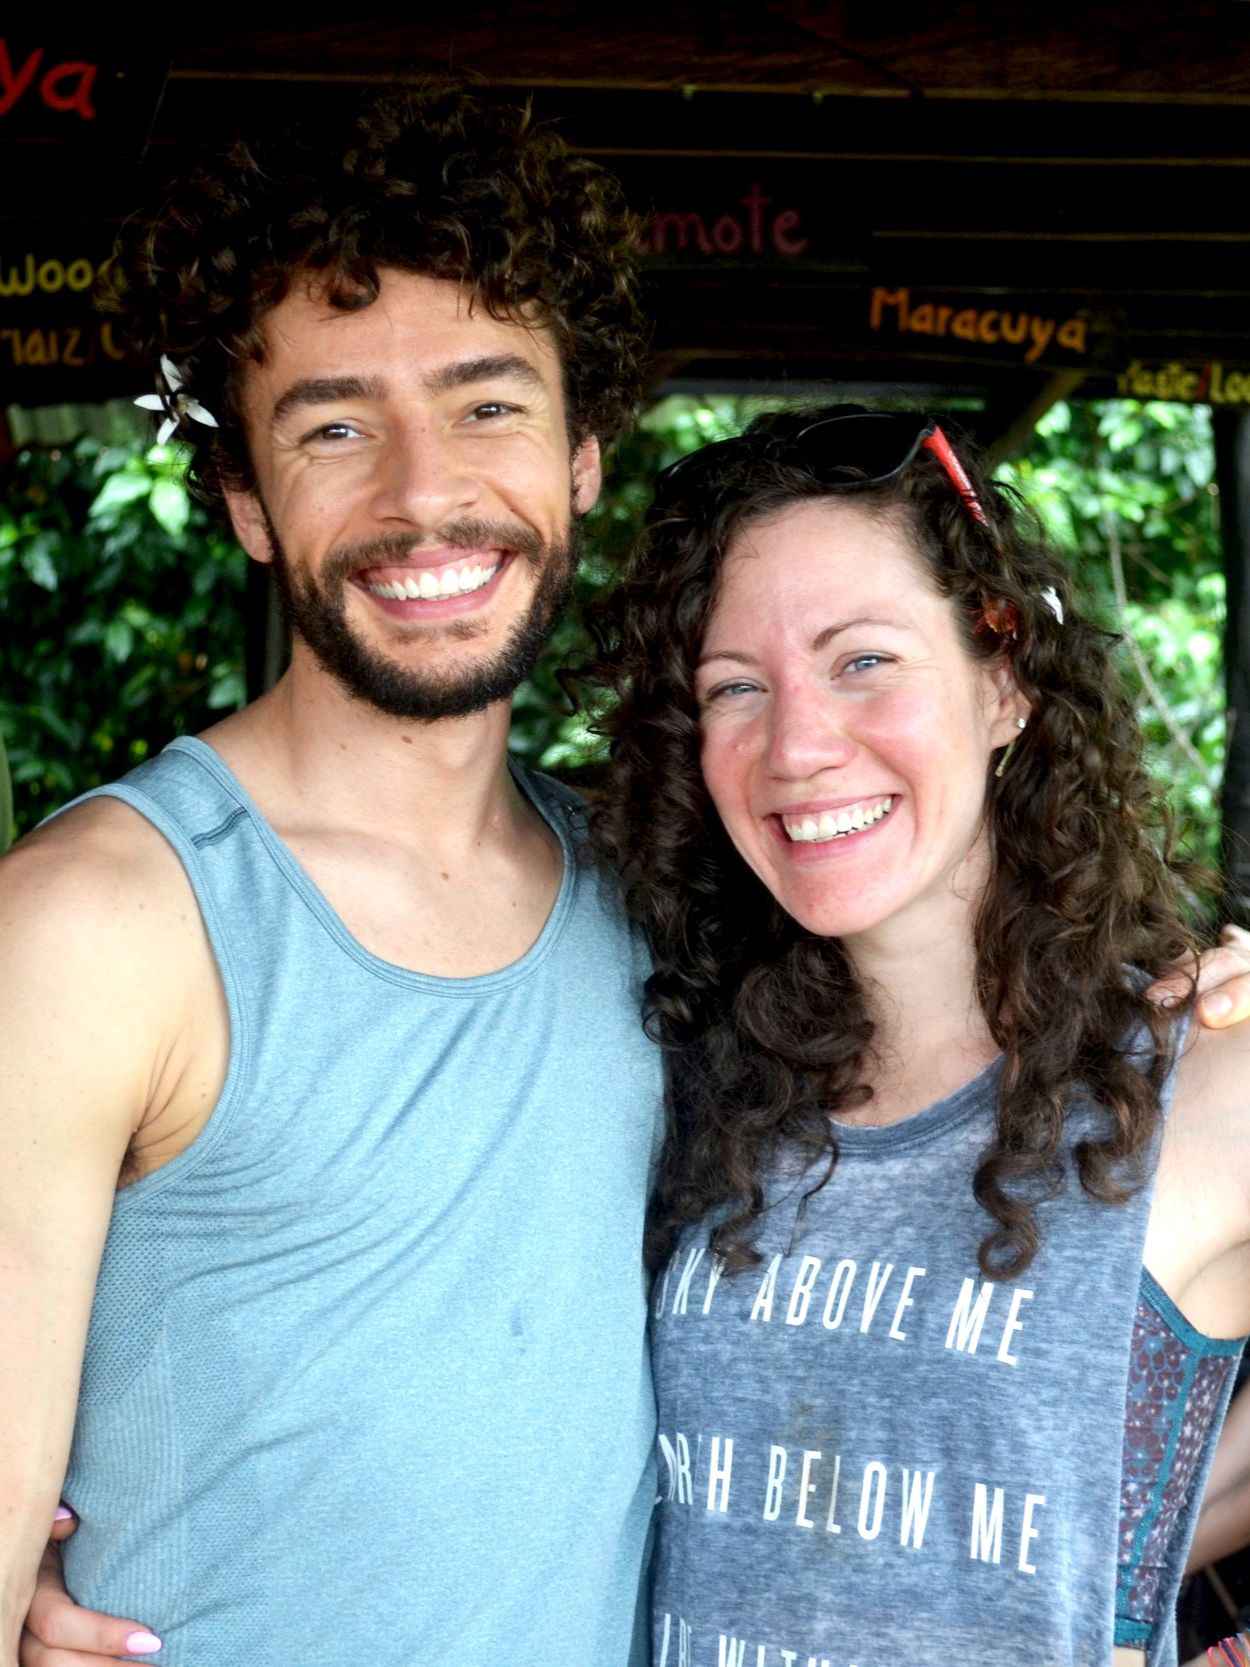 Join Alyce and Ian… - as they lead you through yoga, culture and adventure in and around La Fortuna, Costa Rica. The week will awaken and break down barriers for you to discover your own PURA VIDA!